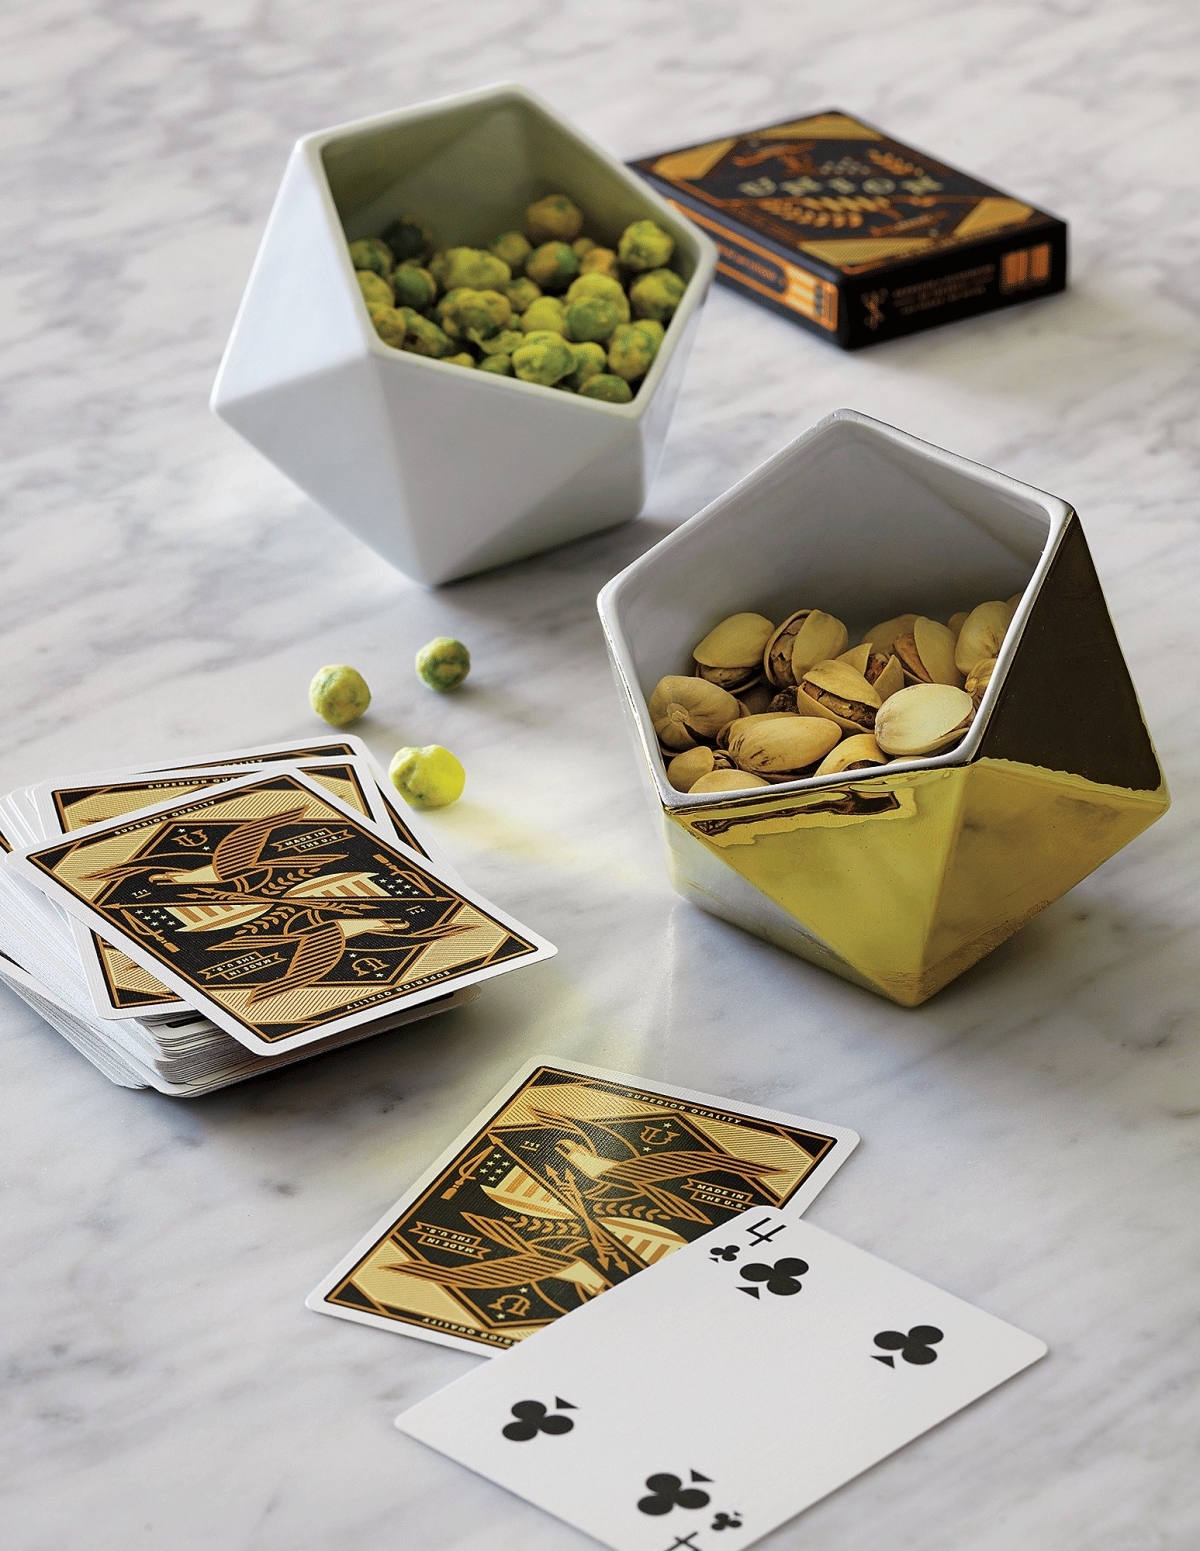 Faceted bowls from CB2